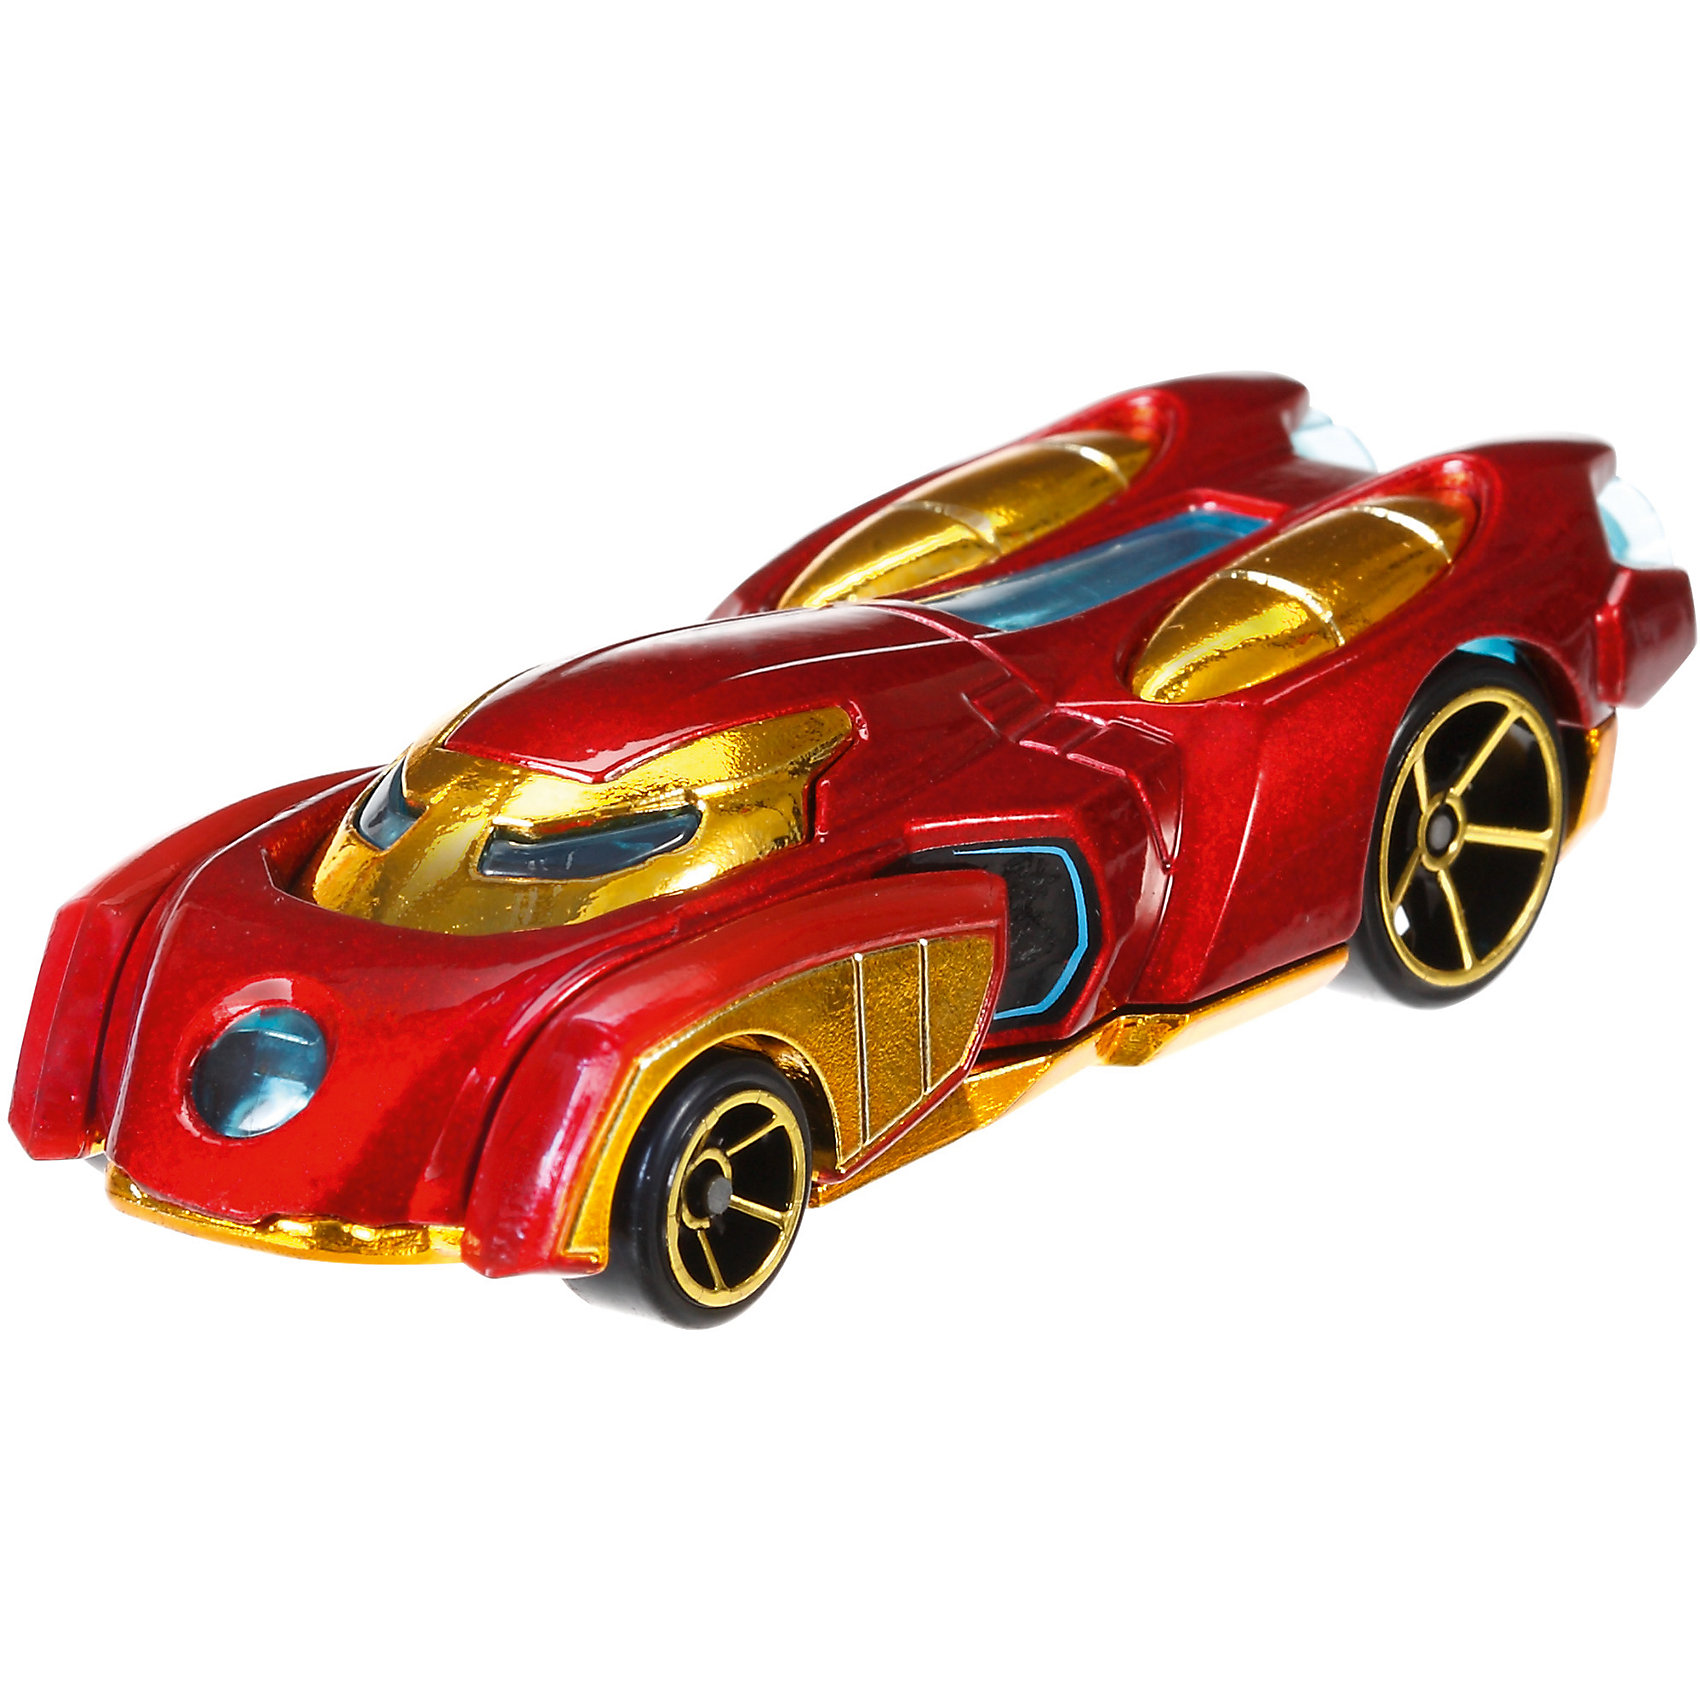 Mattel Машинка героев Marvel, Hot Wheels